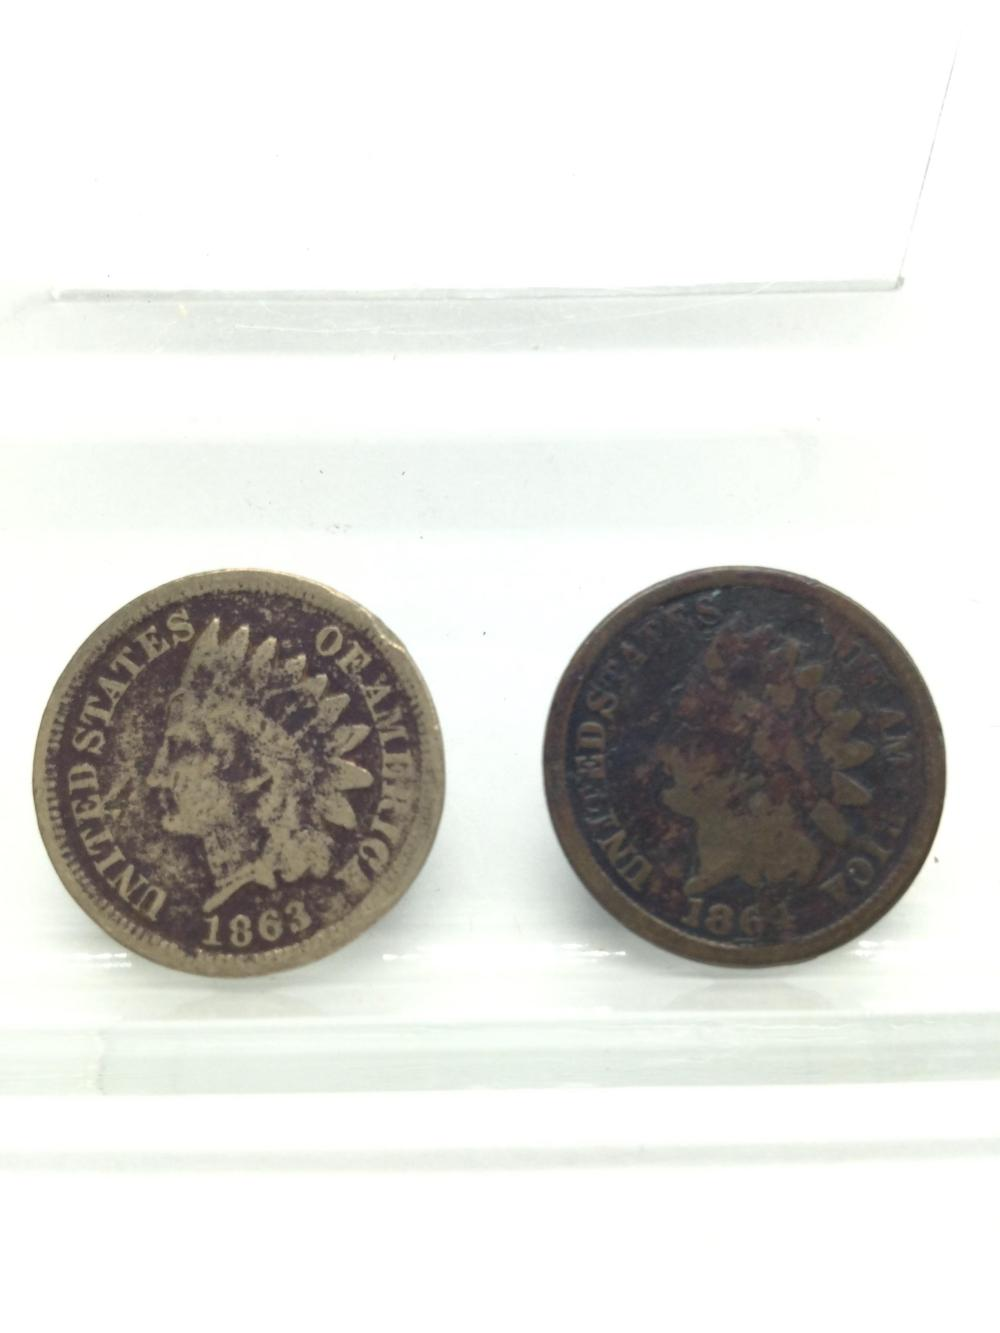 1863 & 1864 Indian Head Cents